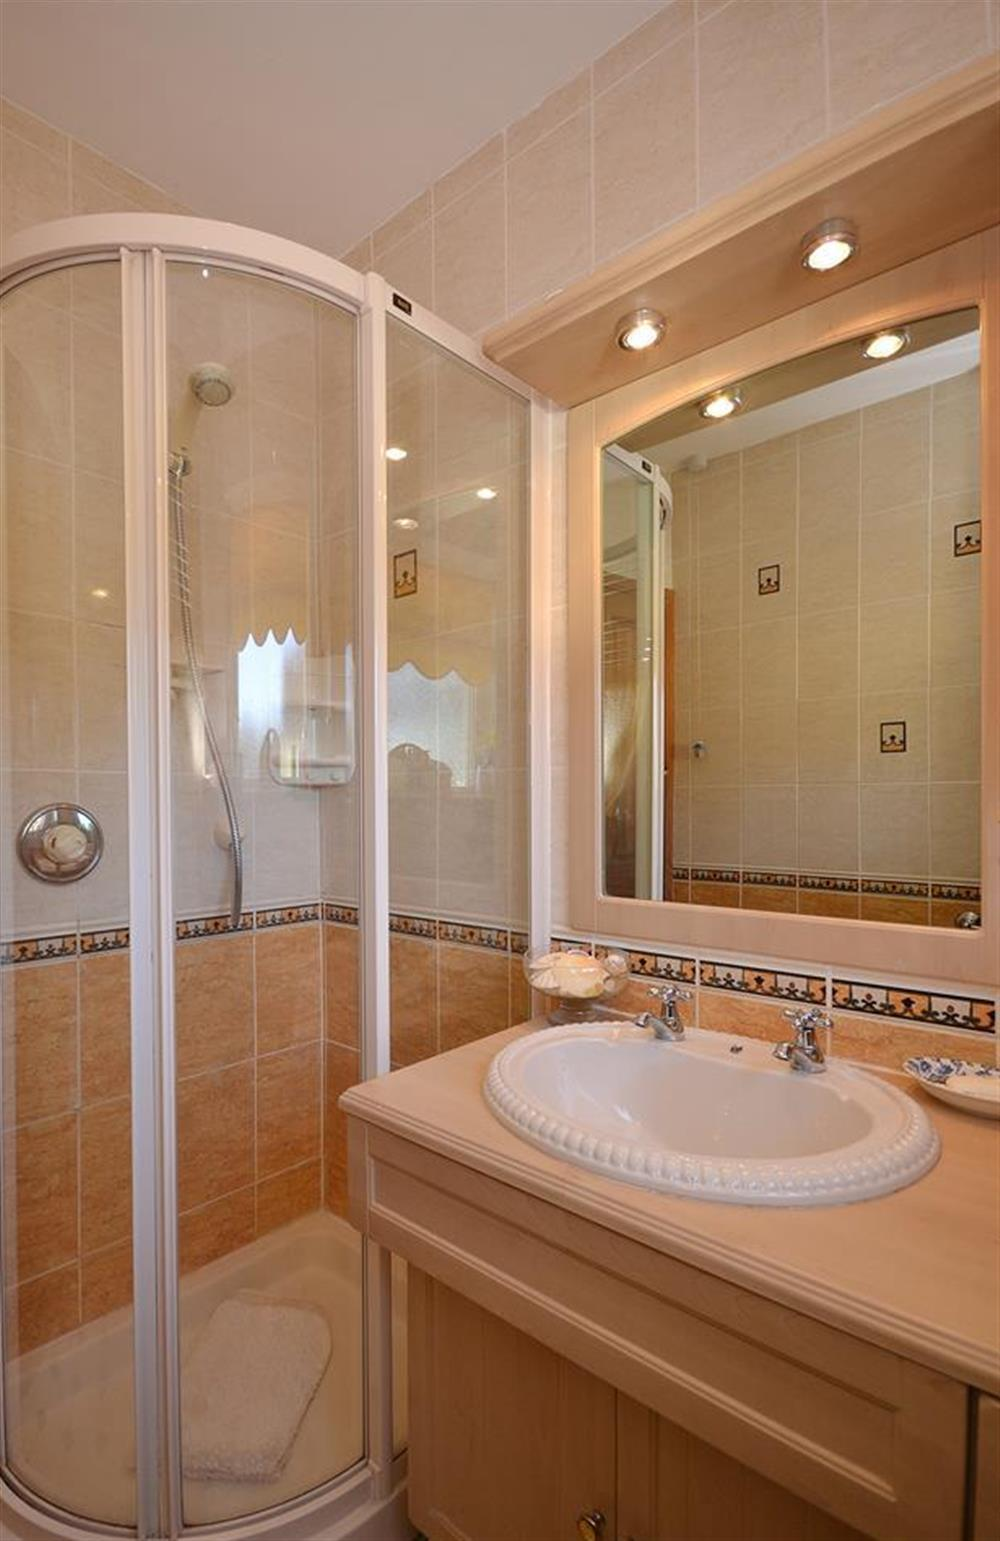 Well appointed shower room at Fairwinds, Strete